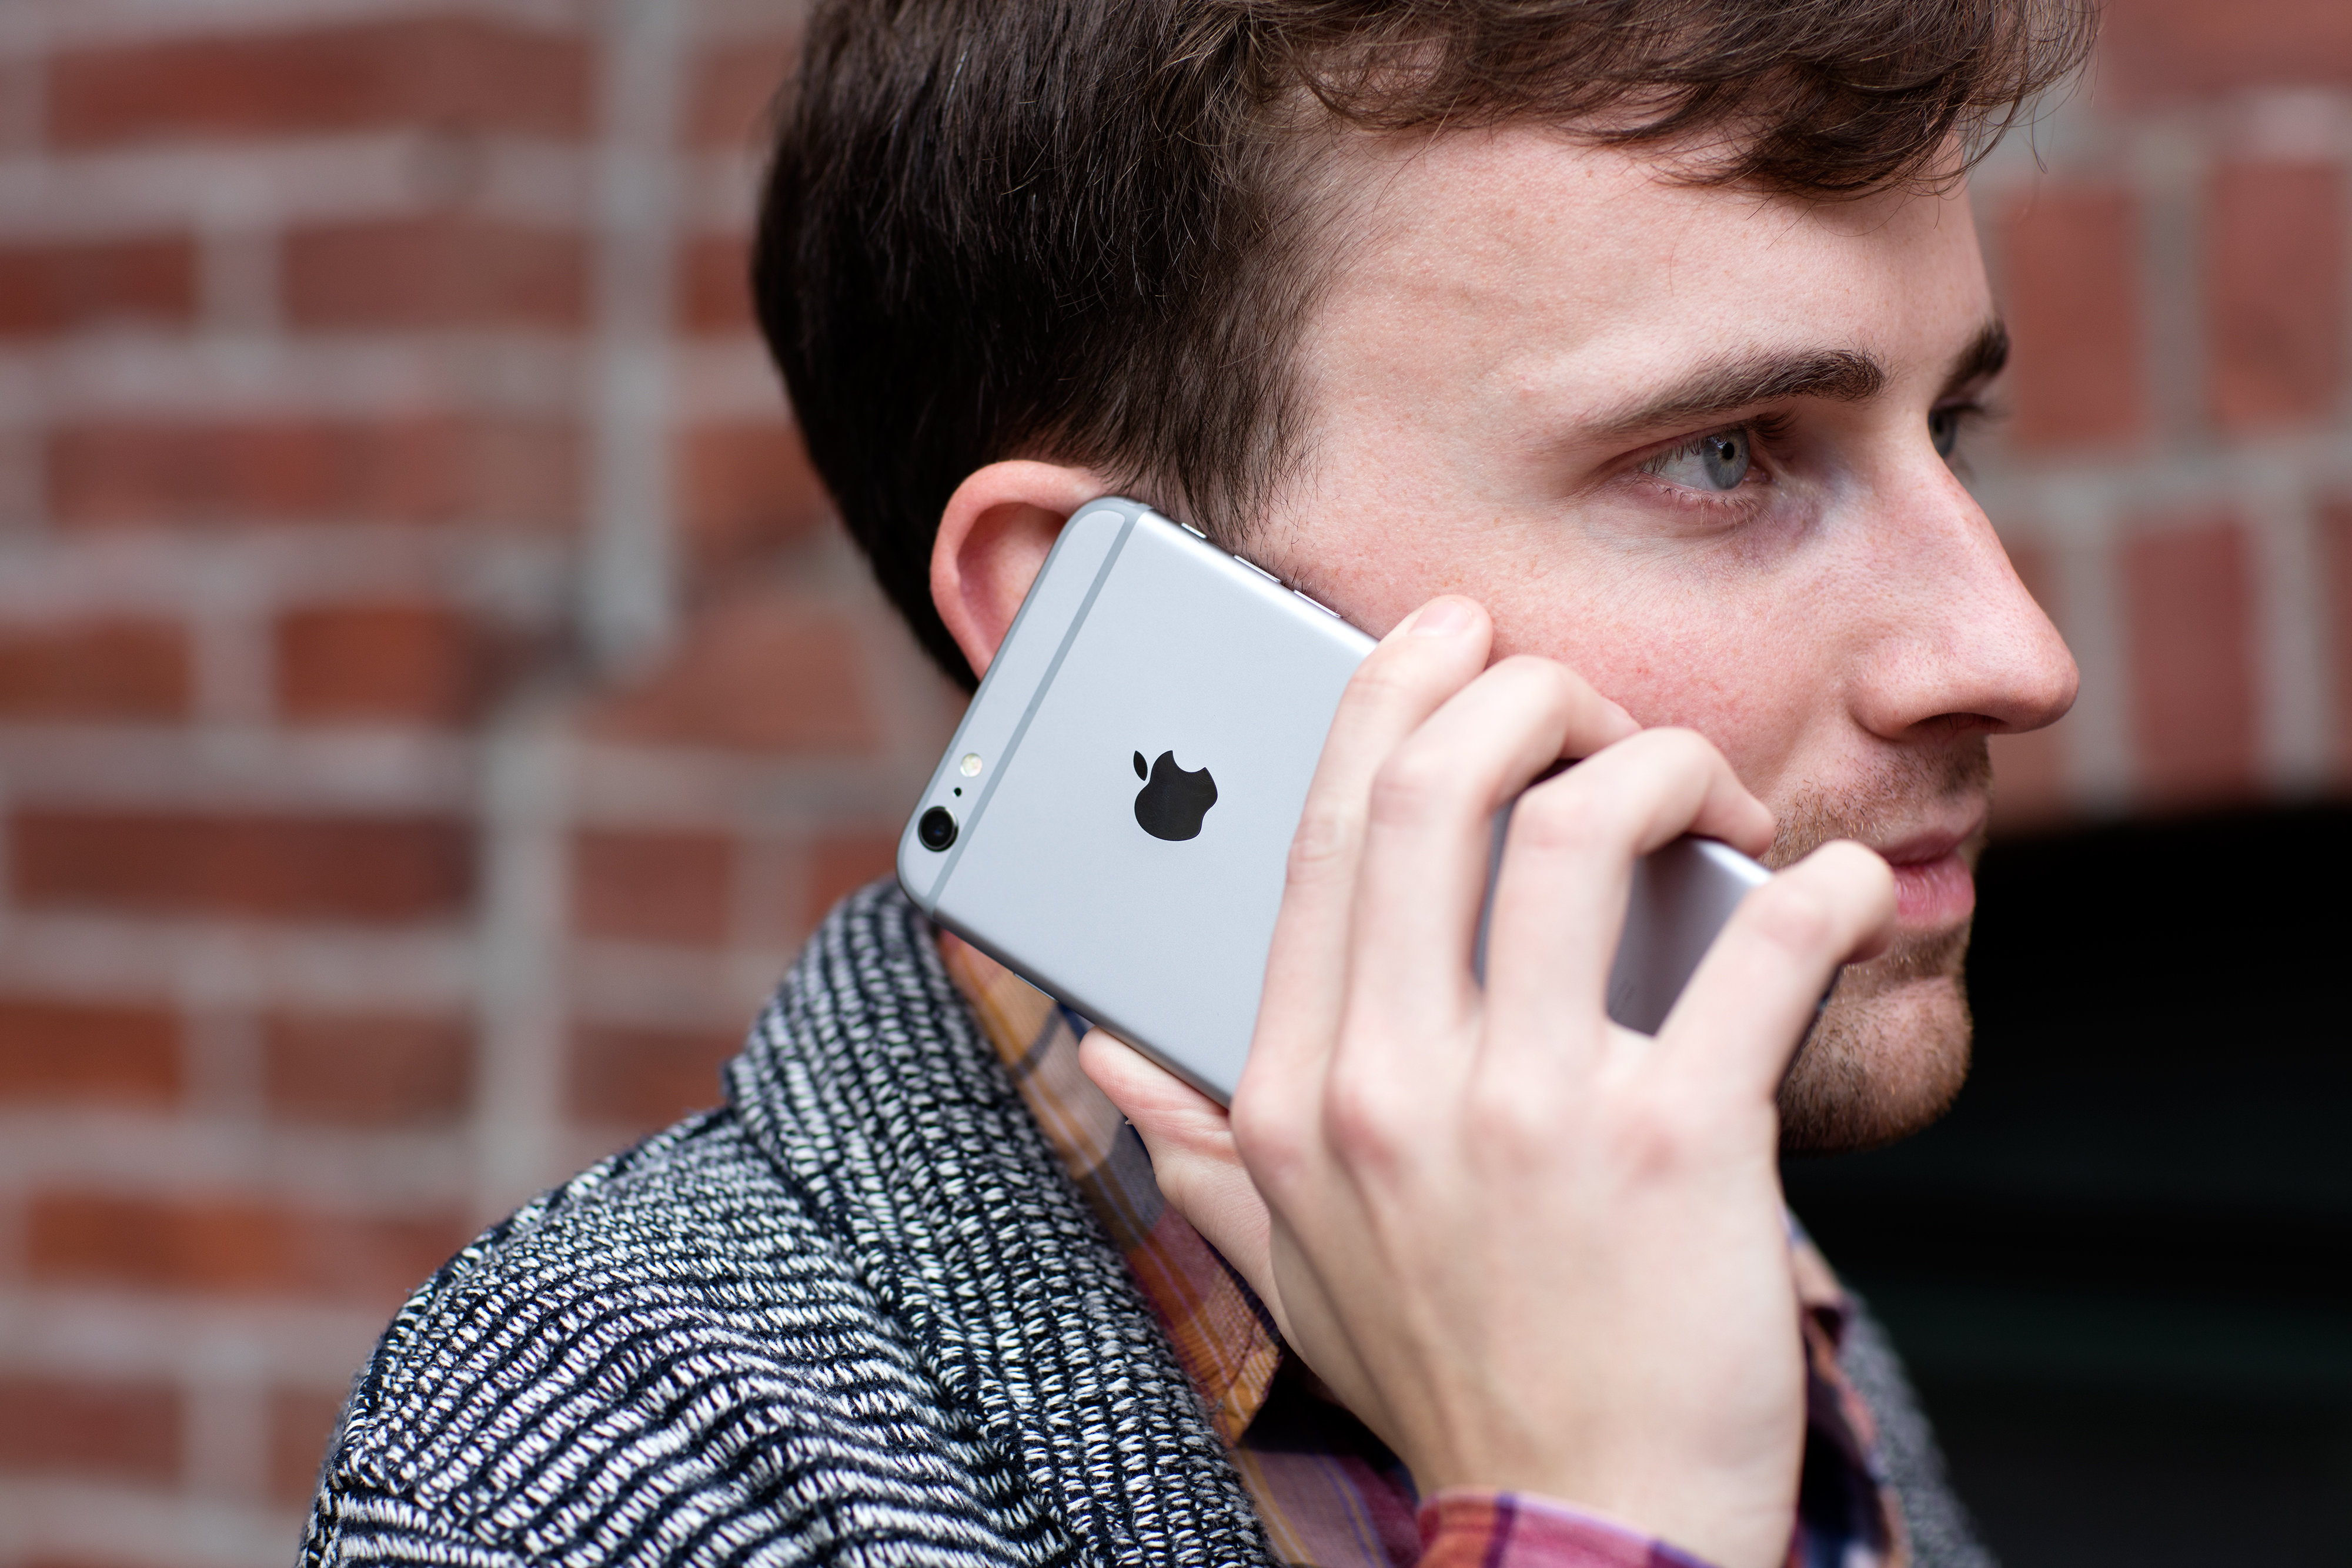 A person taking a call on the iPhone 6s Plus